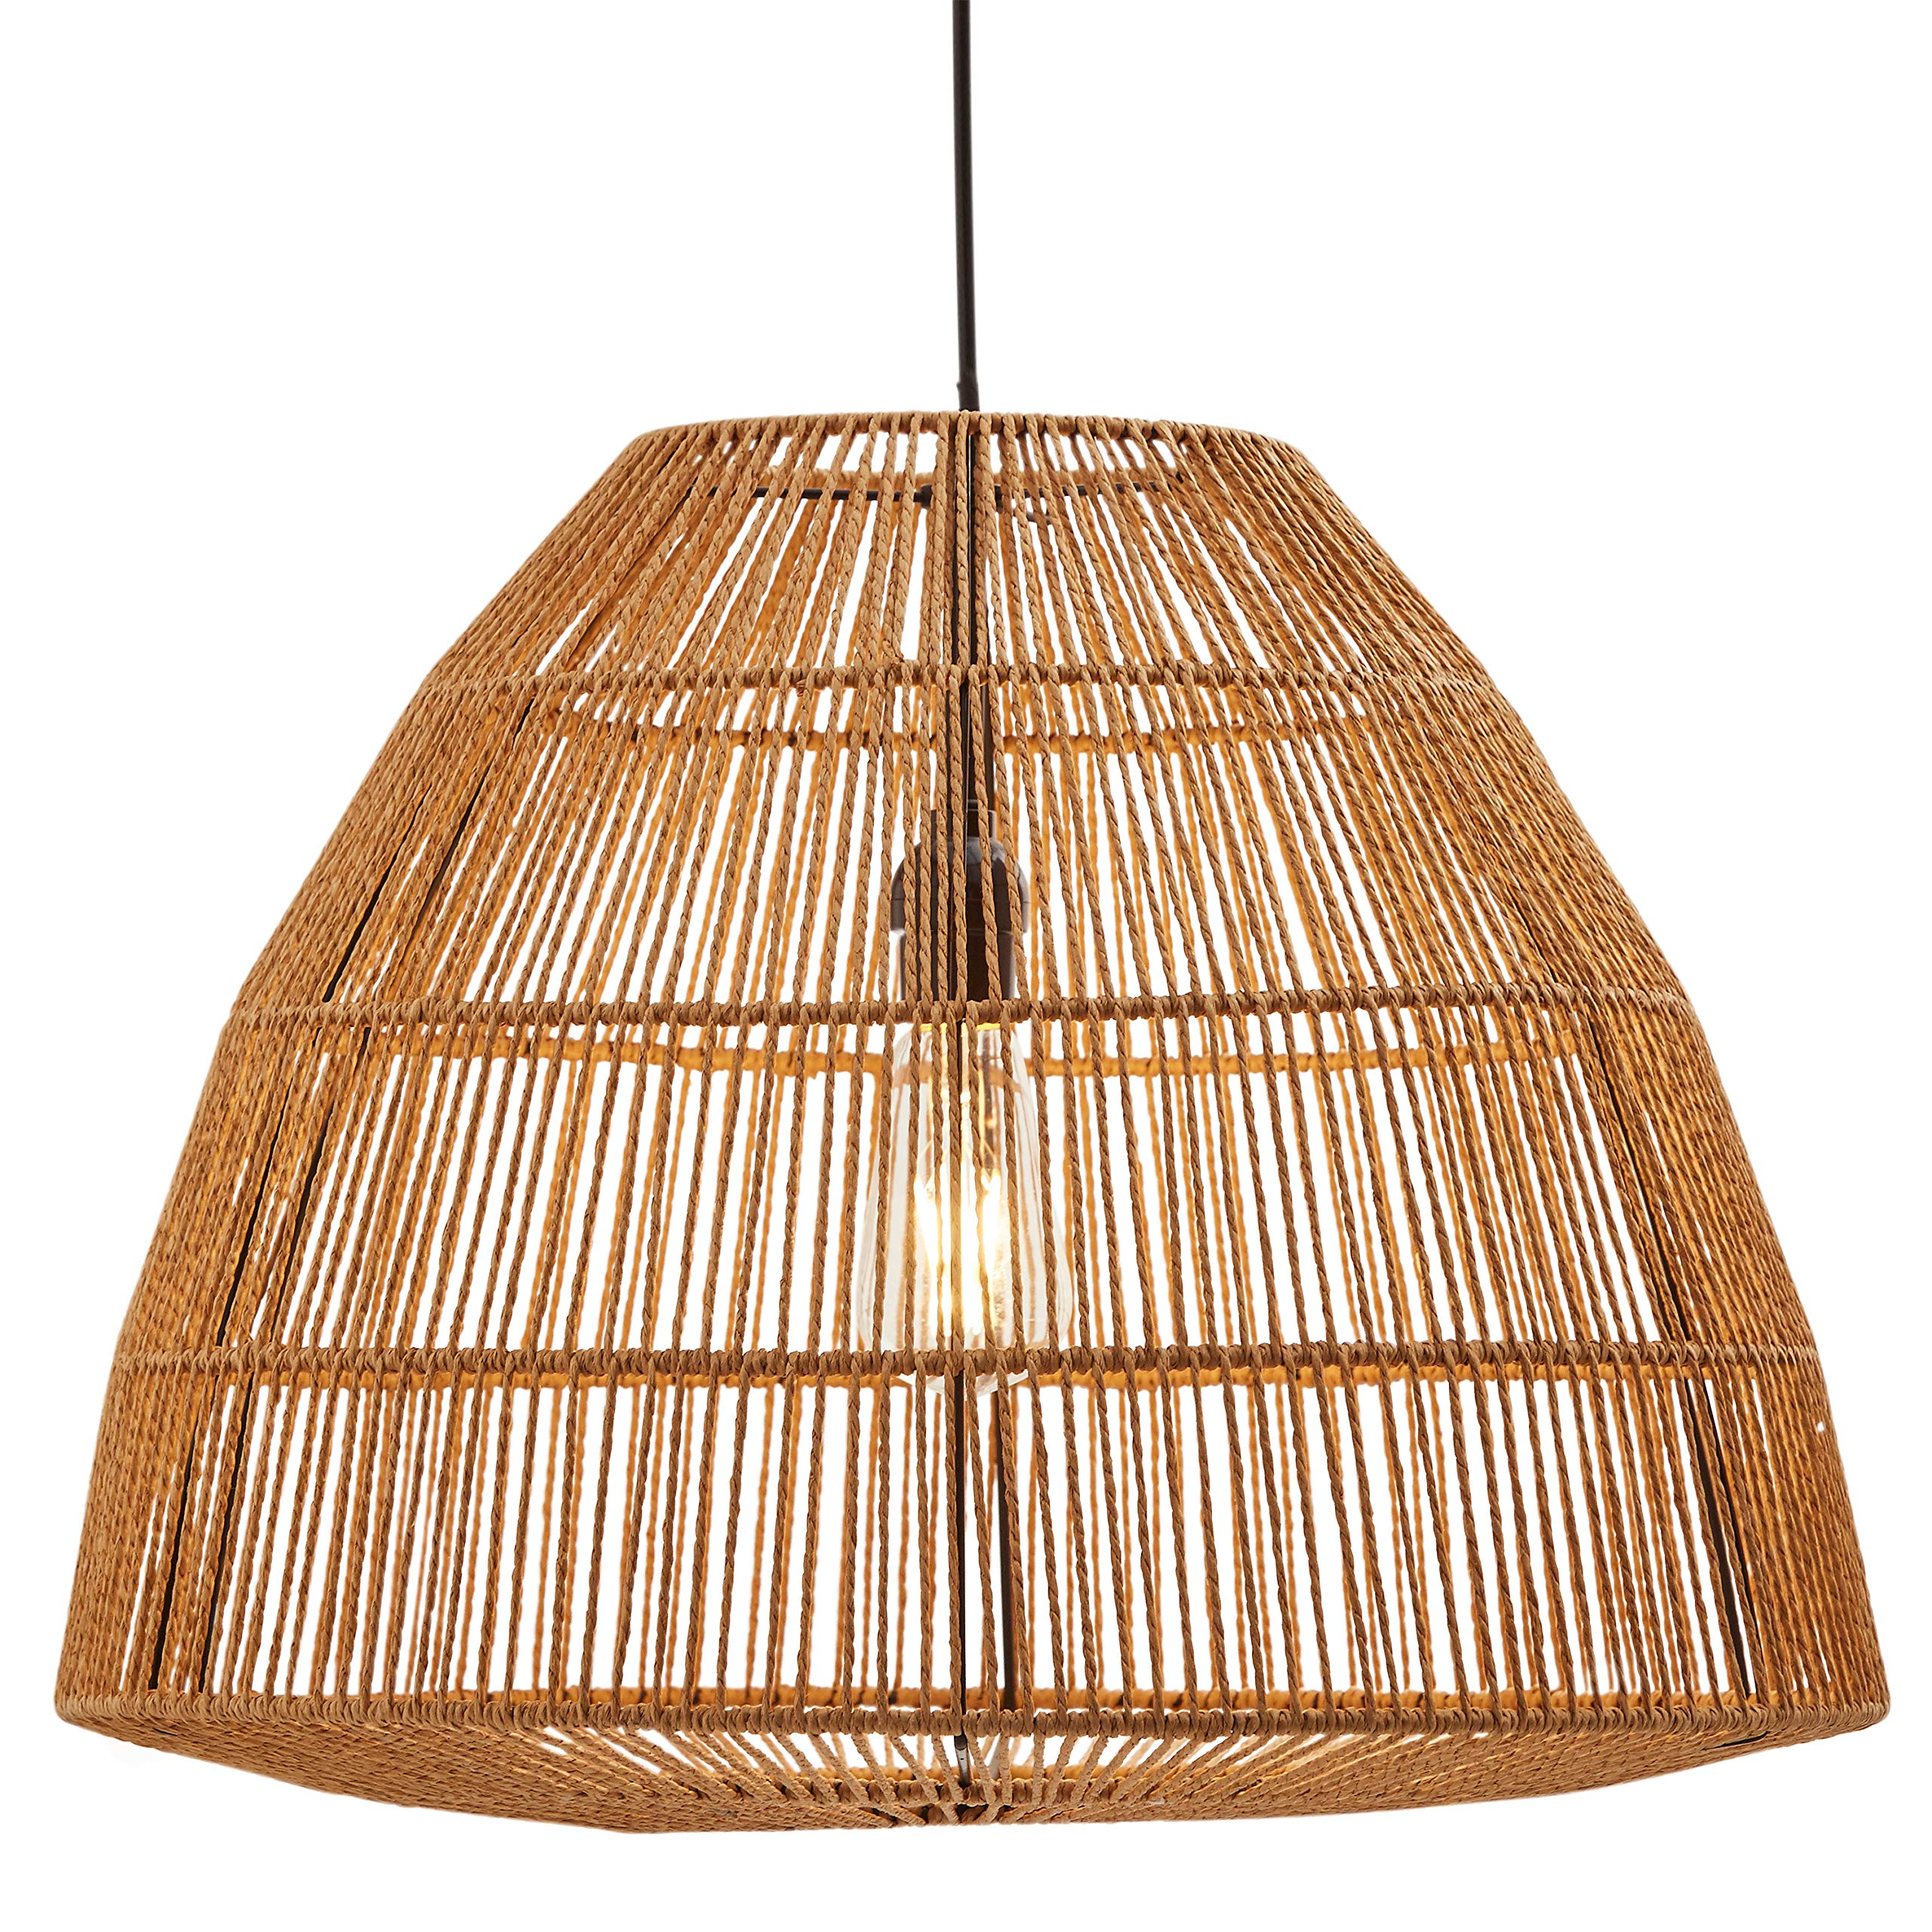 Stone & Beam Rustic Global Round Woven Pendant with Bulb, 44.5''H, Natural Rattan by Stone & Beam (Image #4)